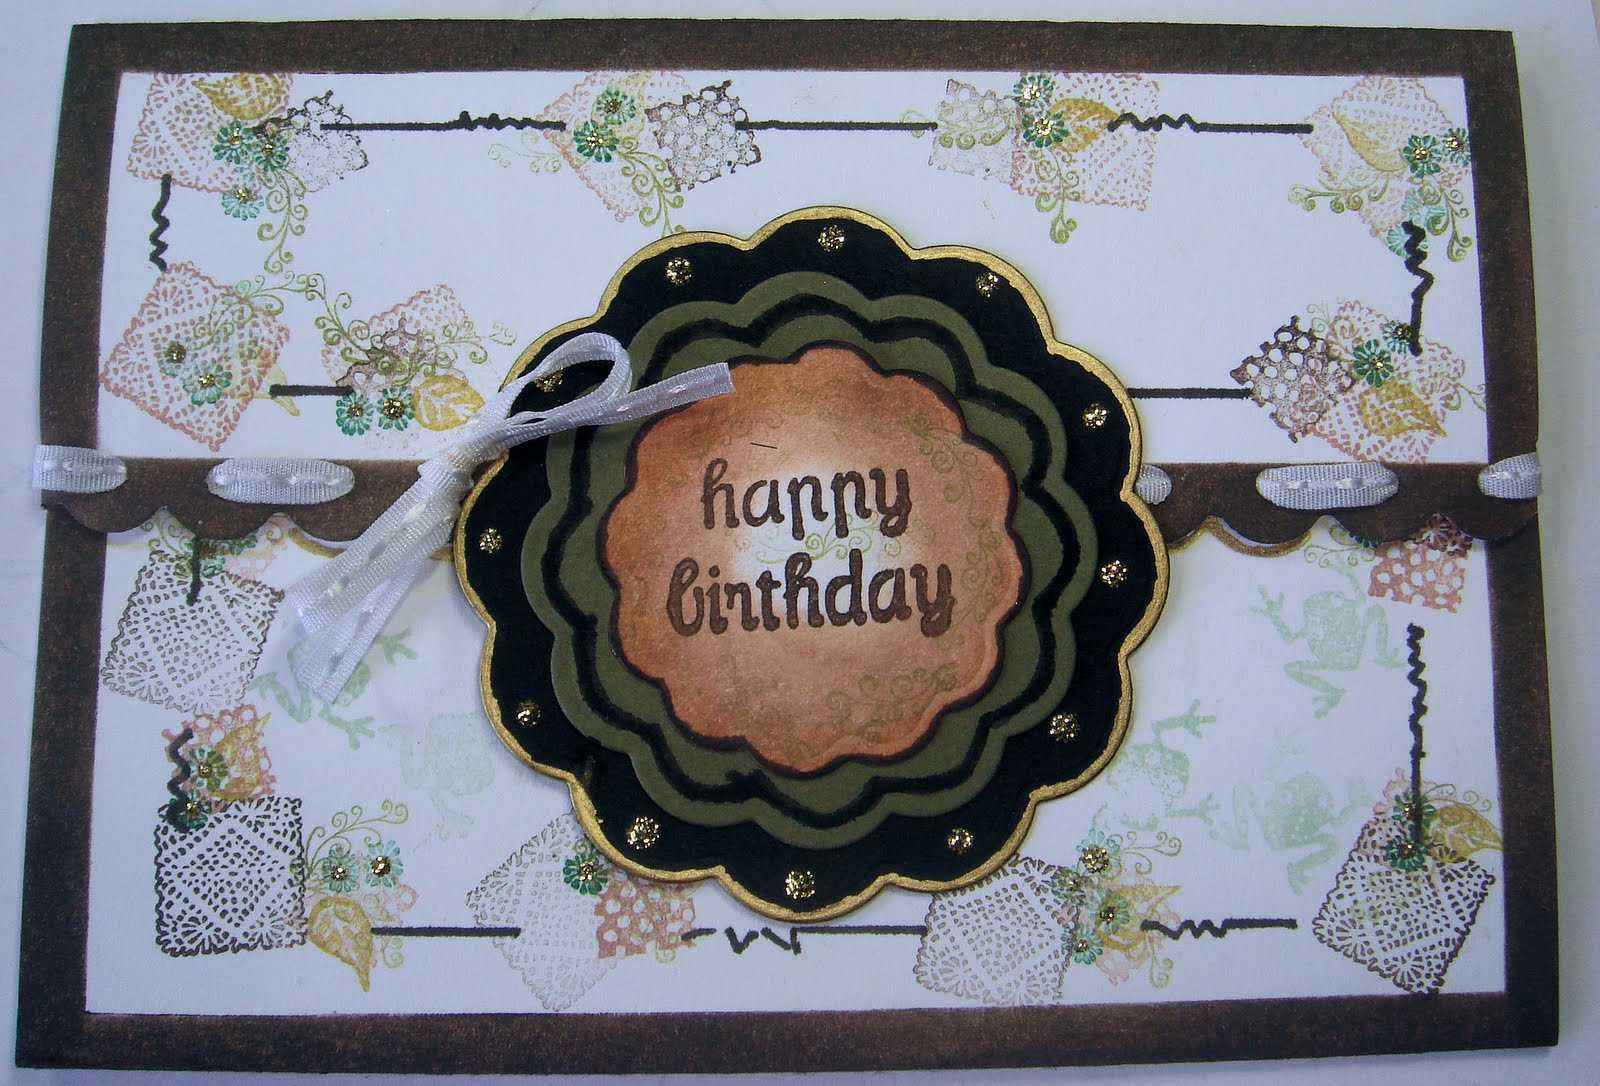 In a World of Craft Manly Birthday Card – Manly Birthday Cards